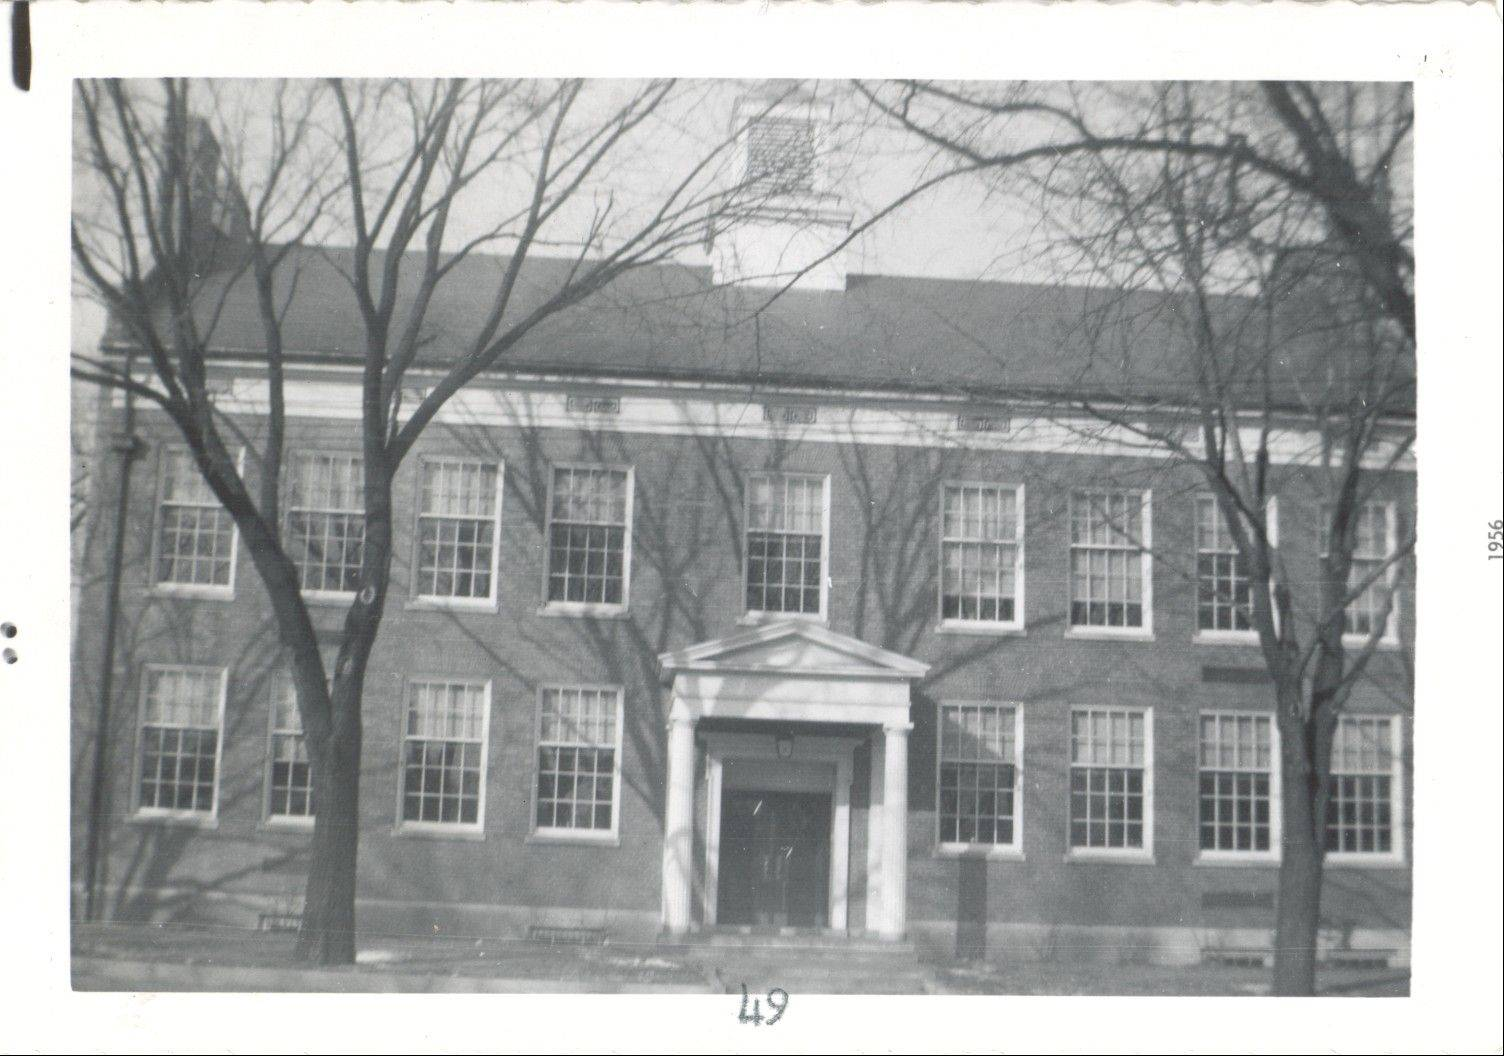 The photo of Central School in Libertyville was taken in 1956. Community leaders sought out a project that would preserve the building.